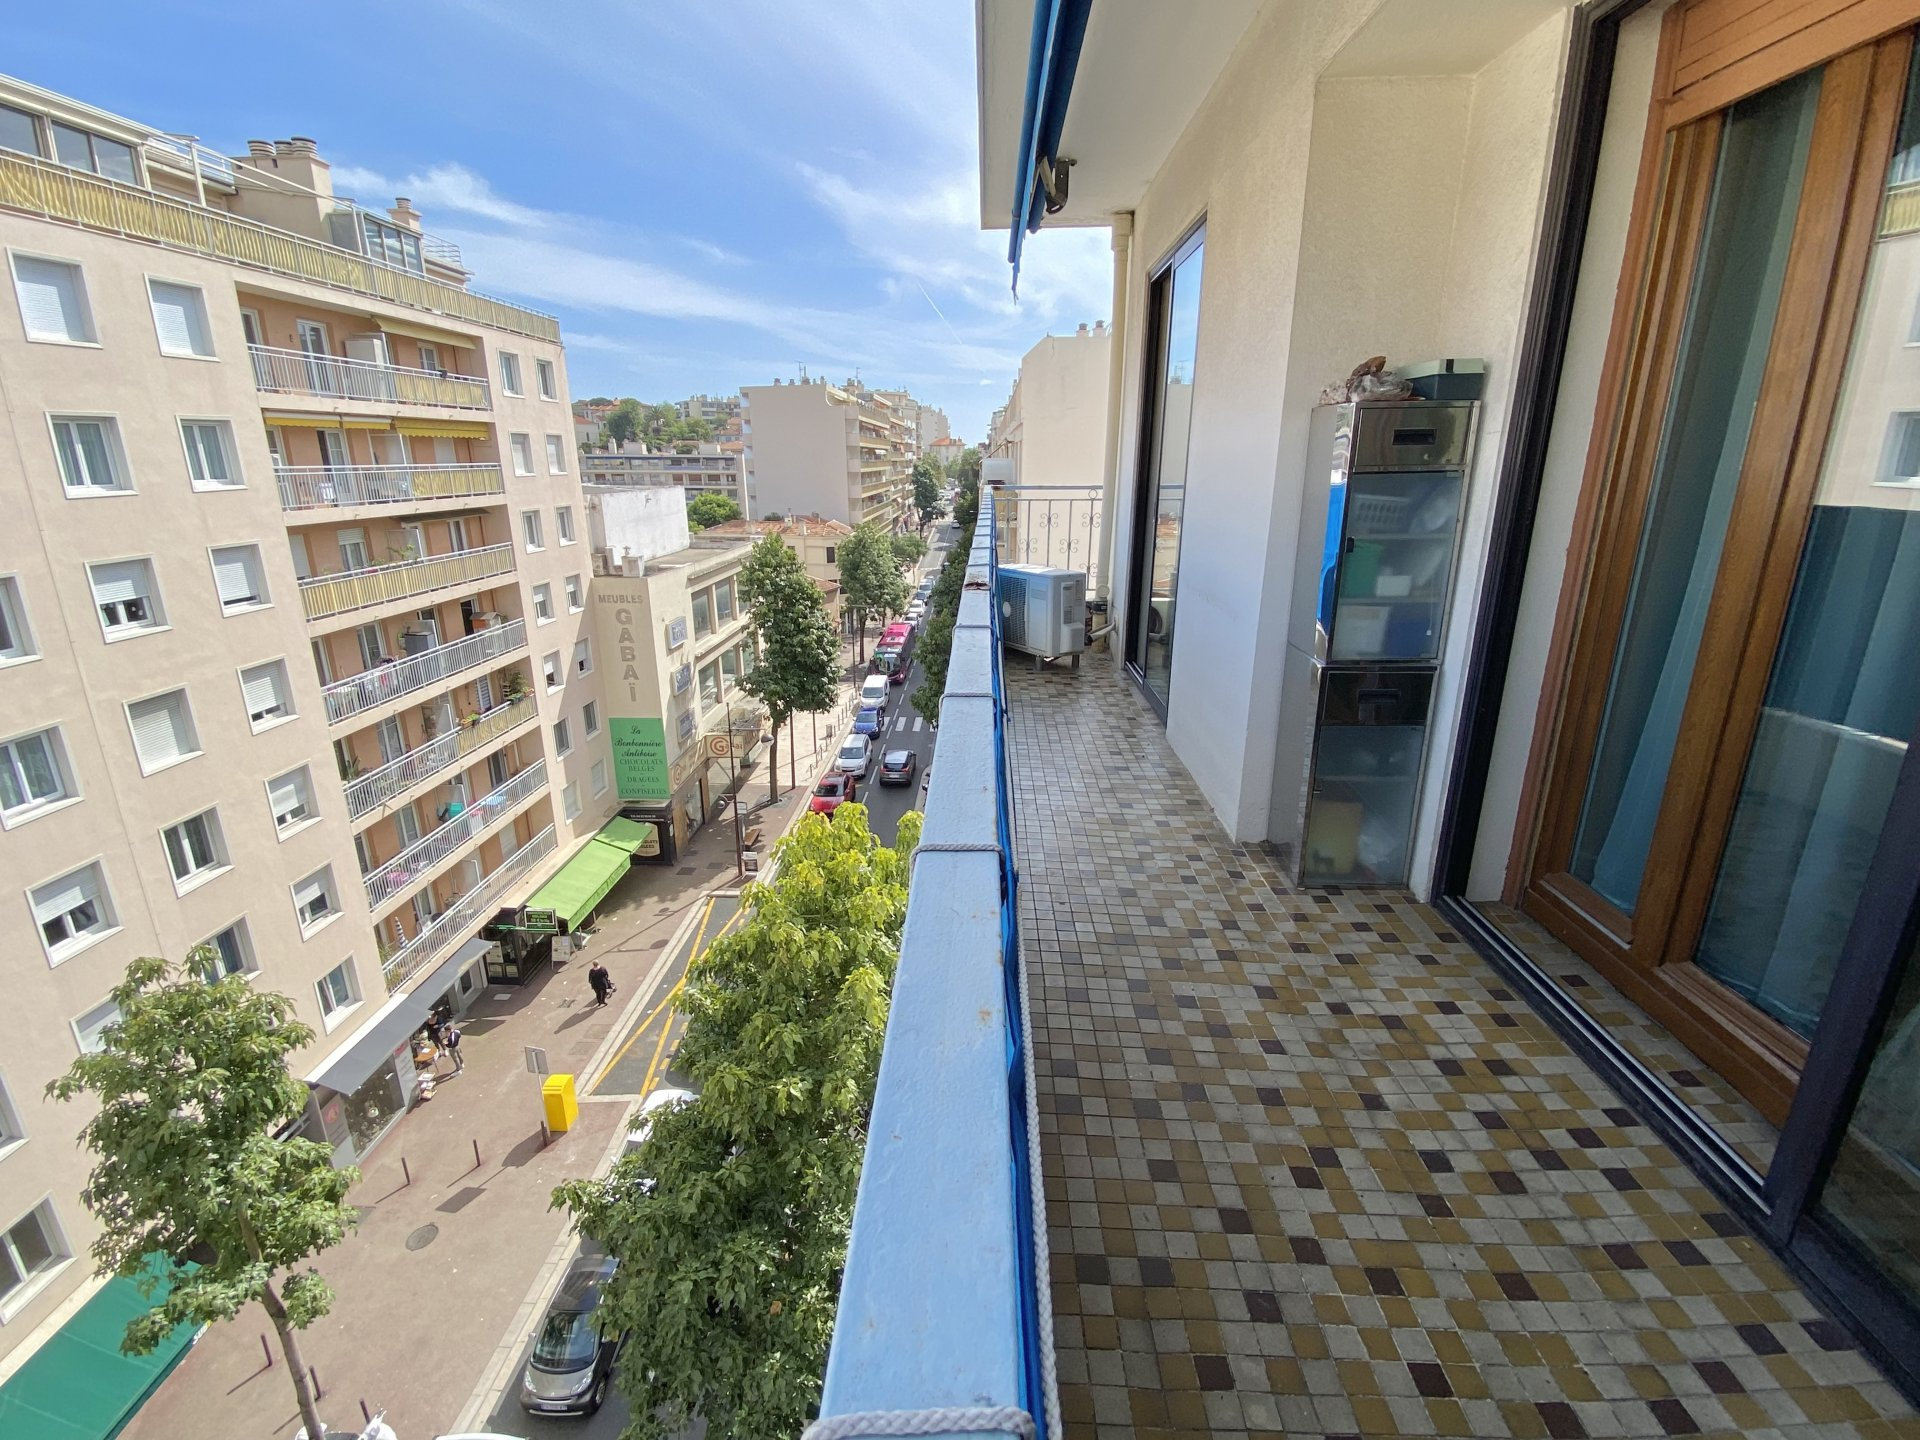 EXCLUSIVE: CENTER OF ANTIBES, 3 ROOMS, HIGH FLOOR, QUIET WITH 2 TERRACES AND CELLAR